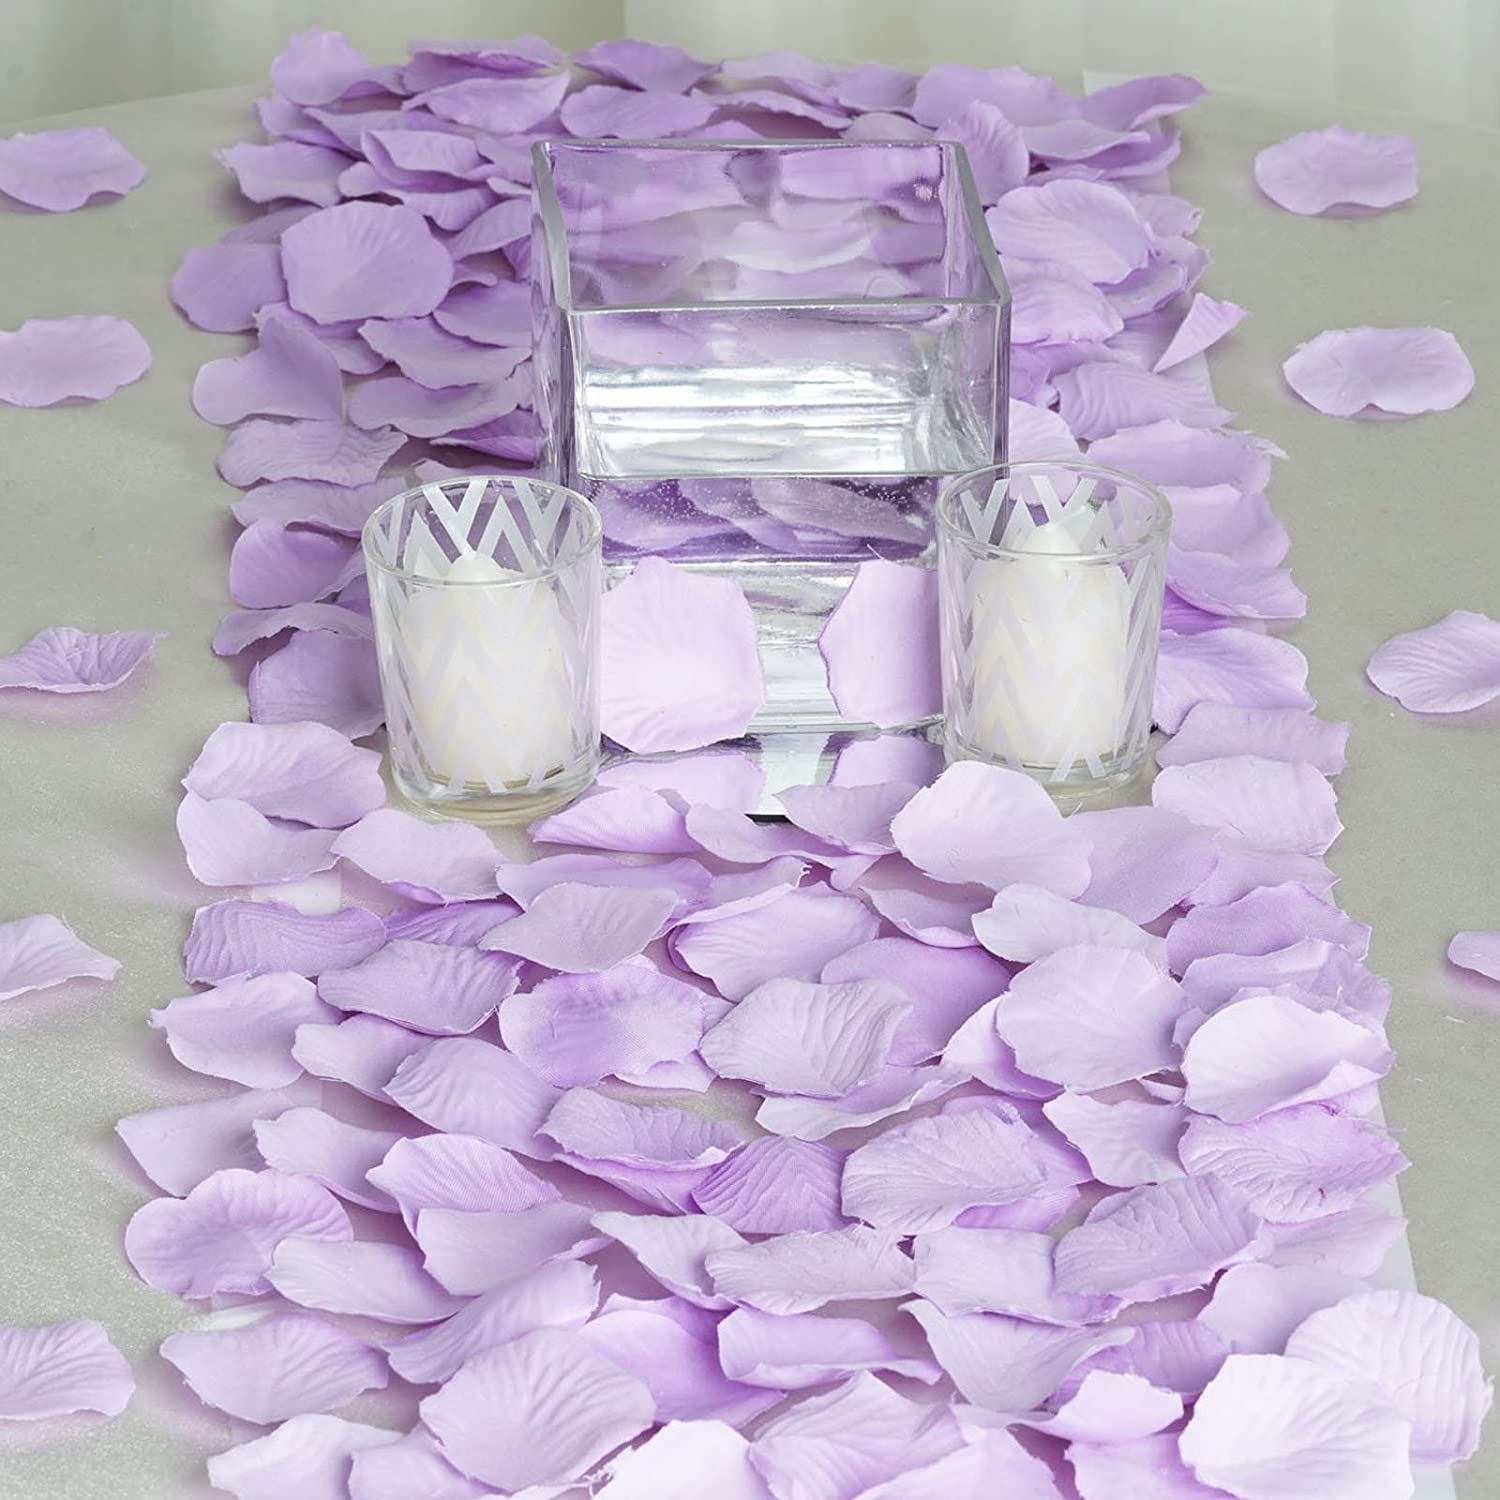 Charming Amazon.com: BalsaCircle 2000 Silk Rose Petals Wedding Decorations Bulk  Supplies   Lavender: Kitchen U0026 Dining